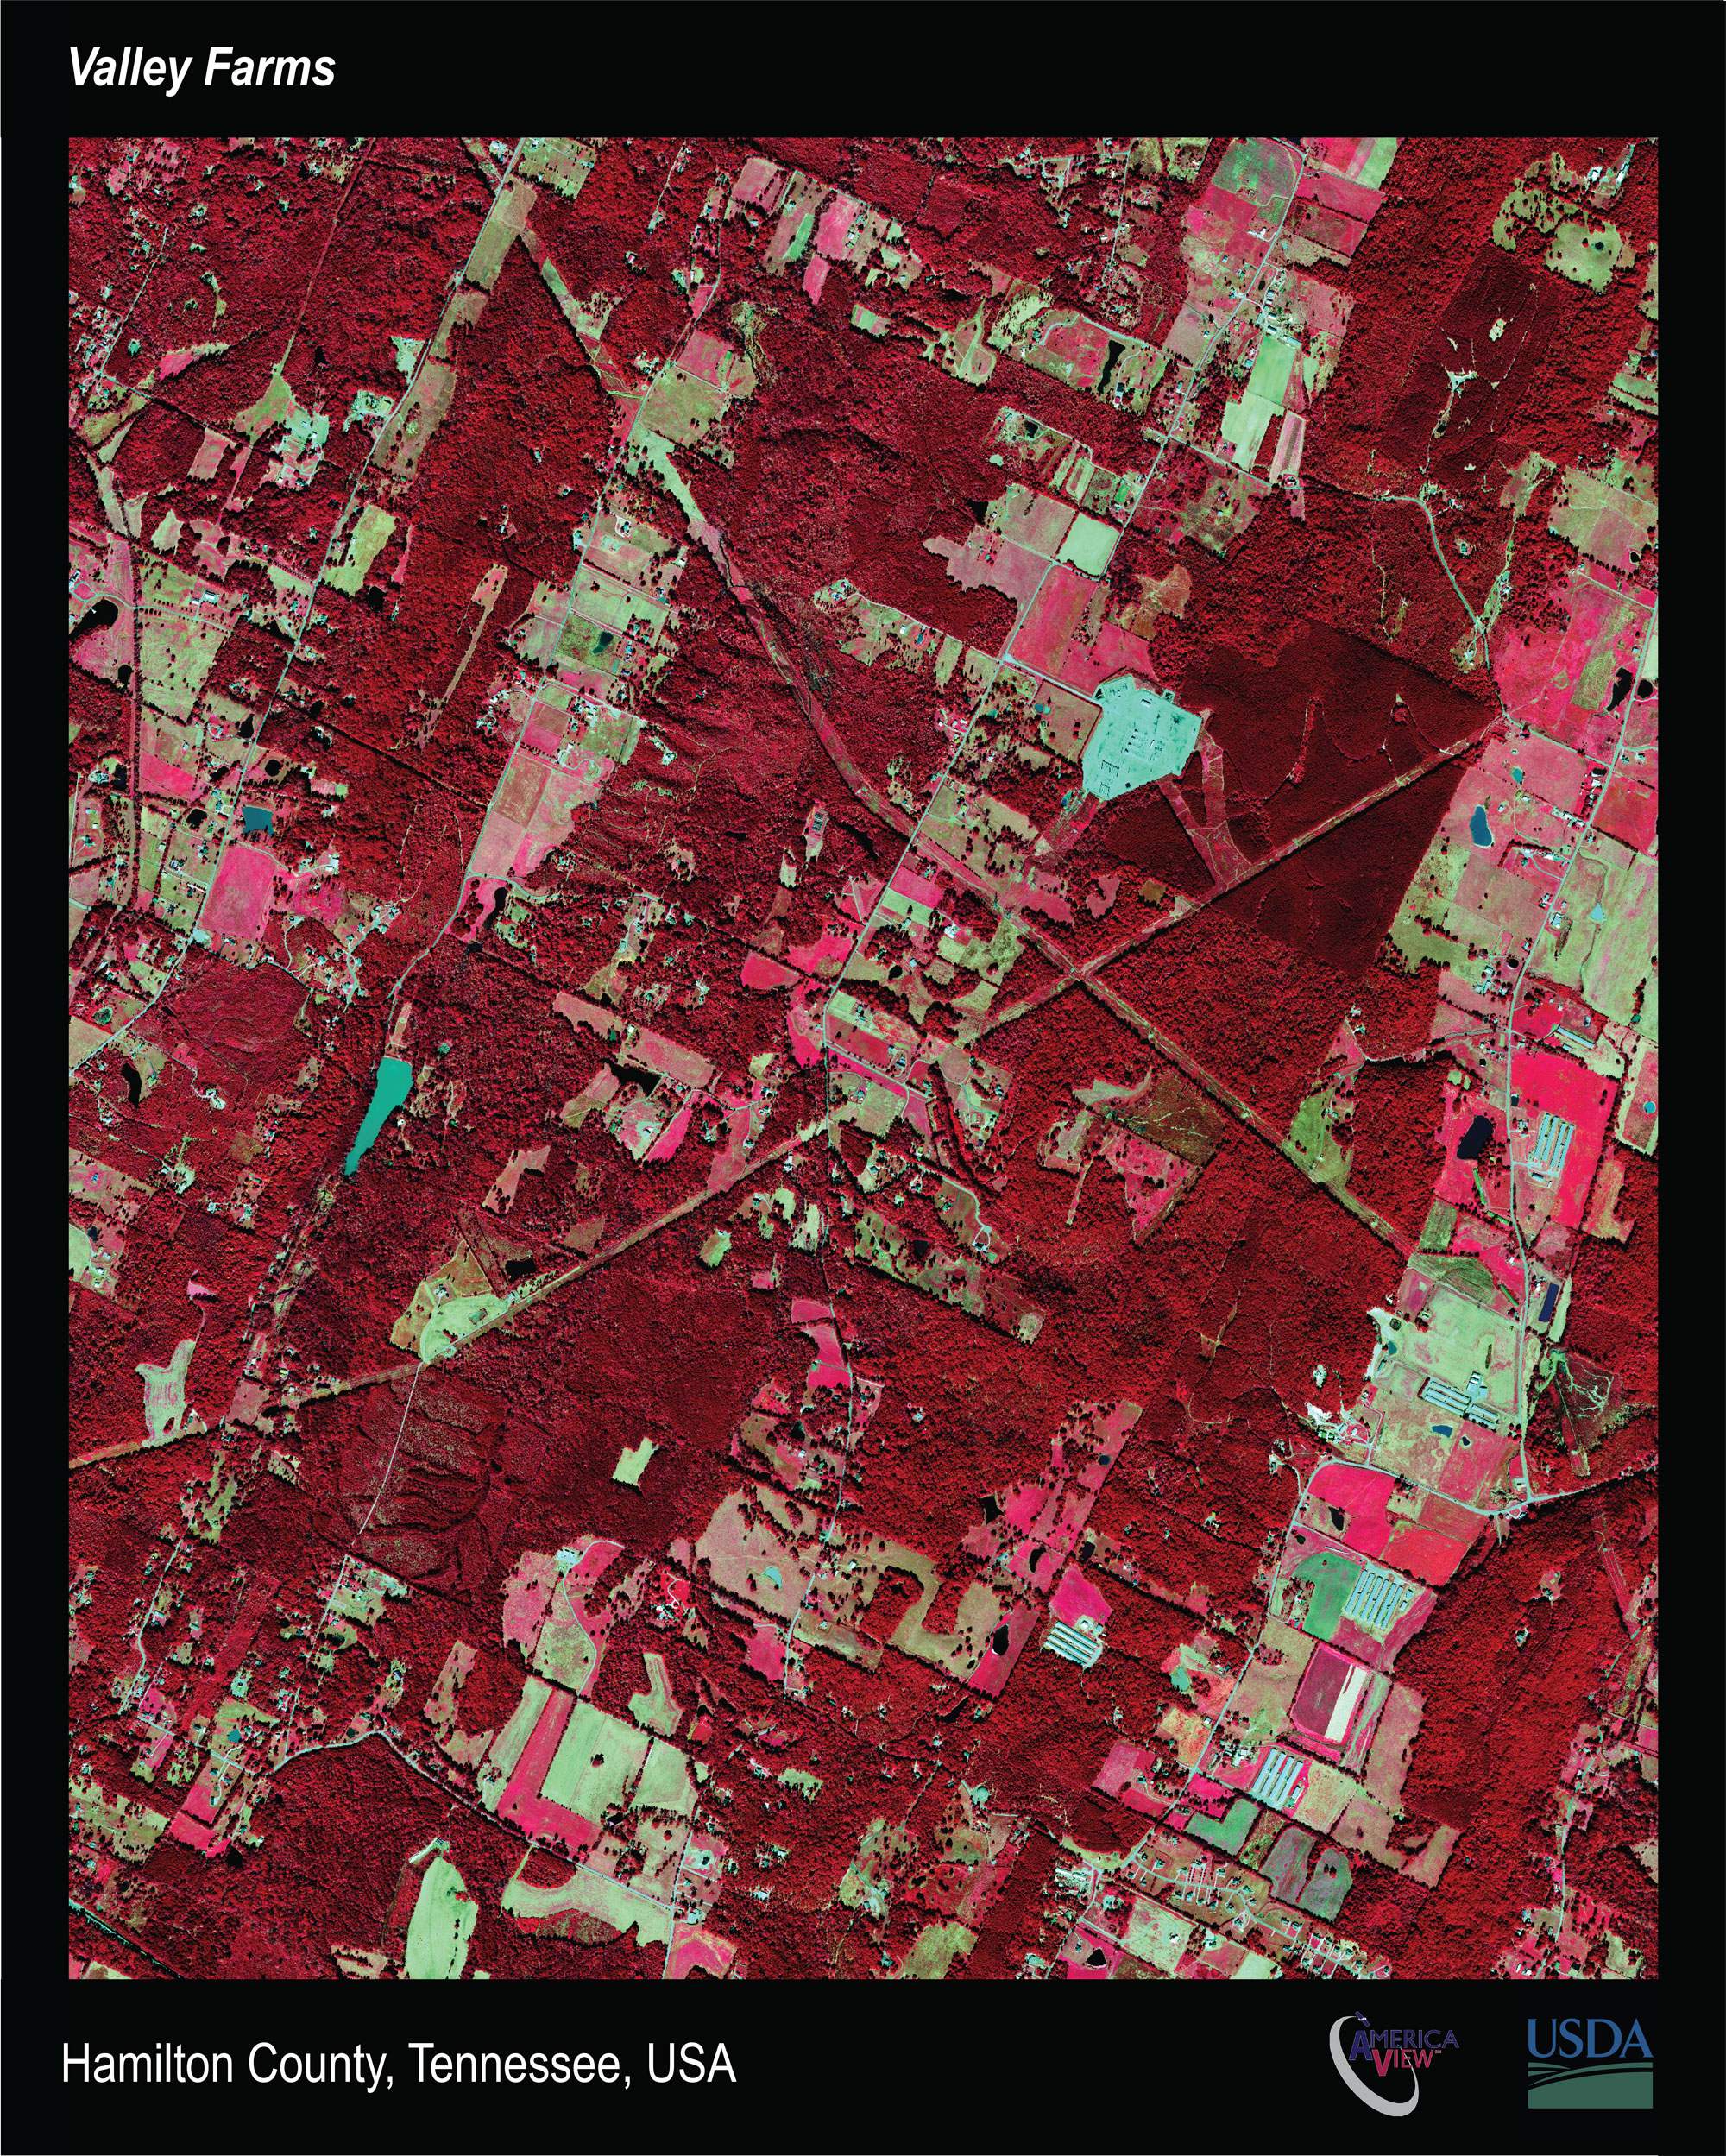 Satellite images of Hamilton County, Tennessee